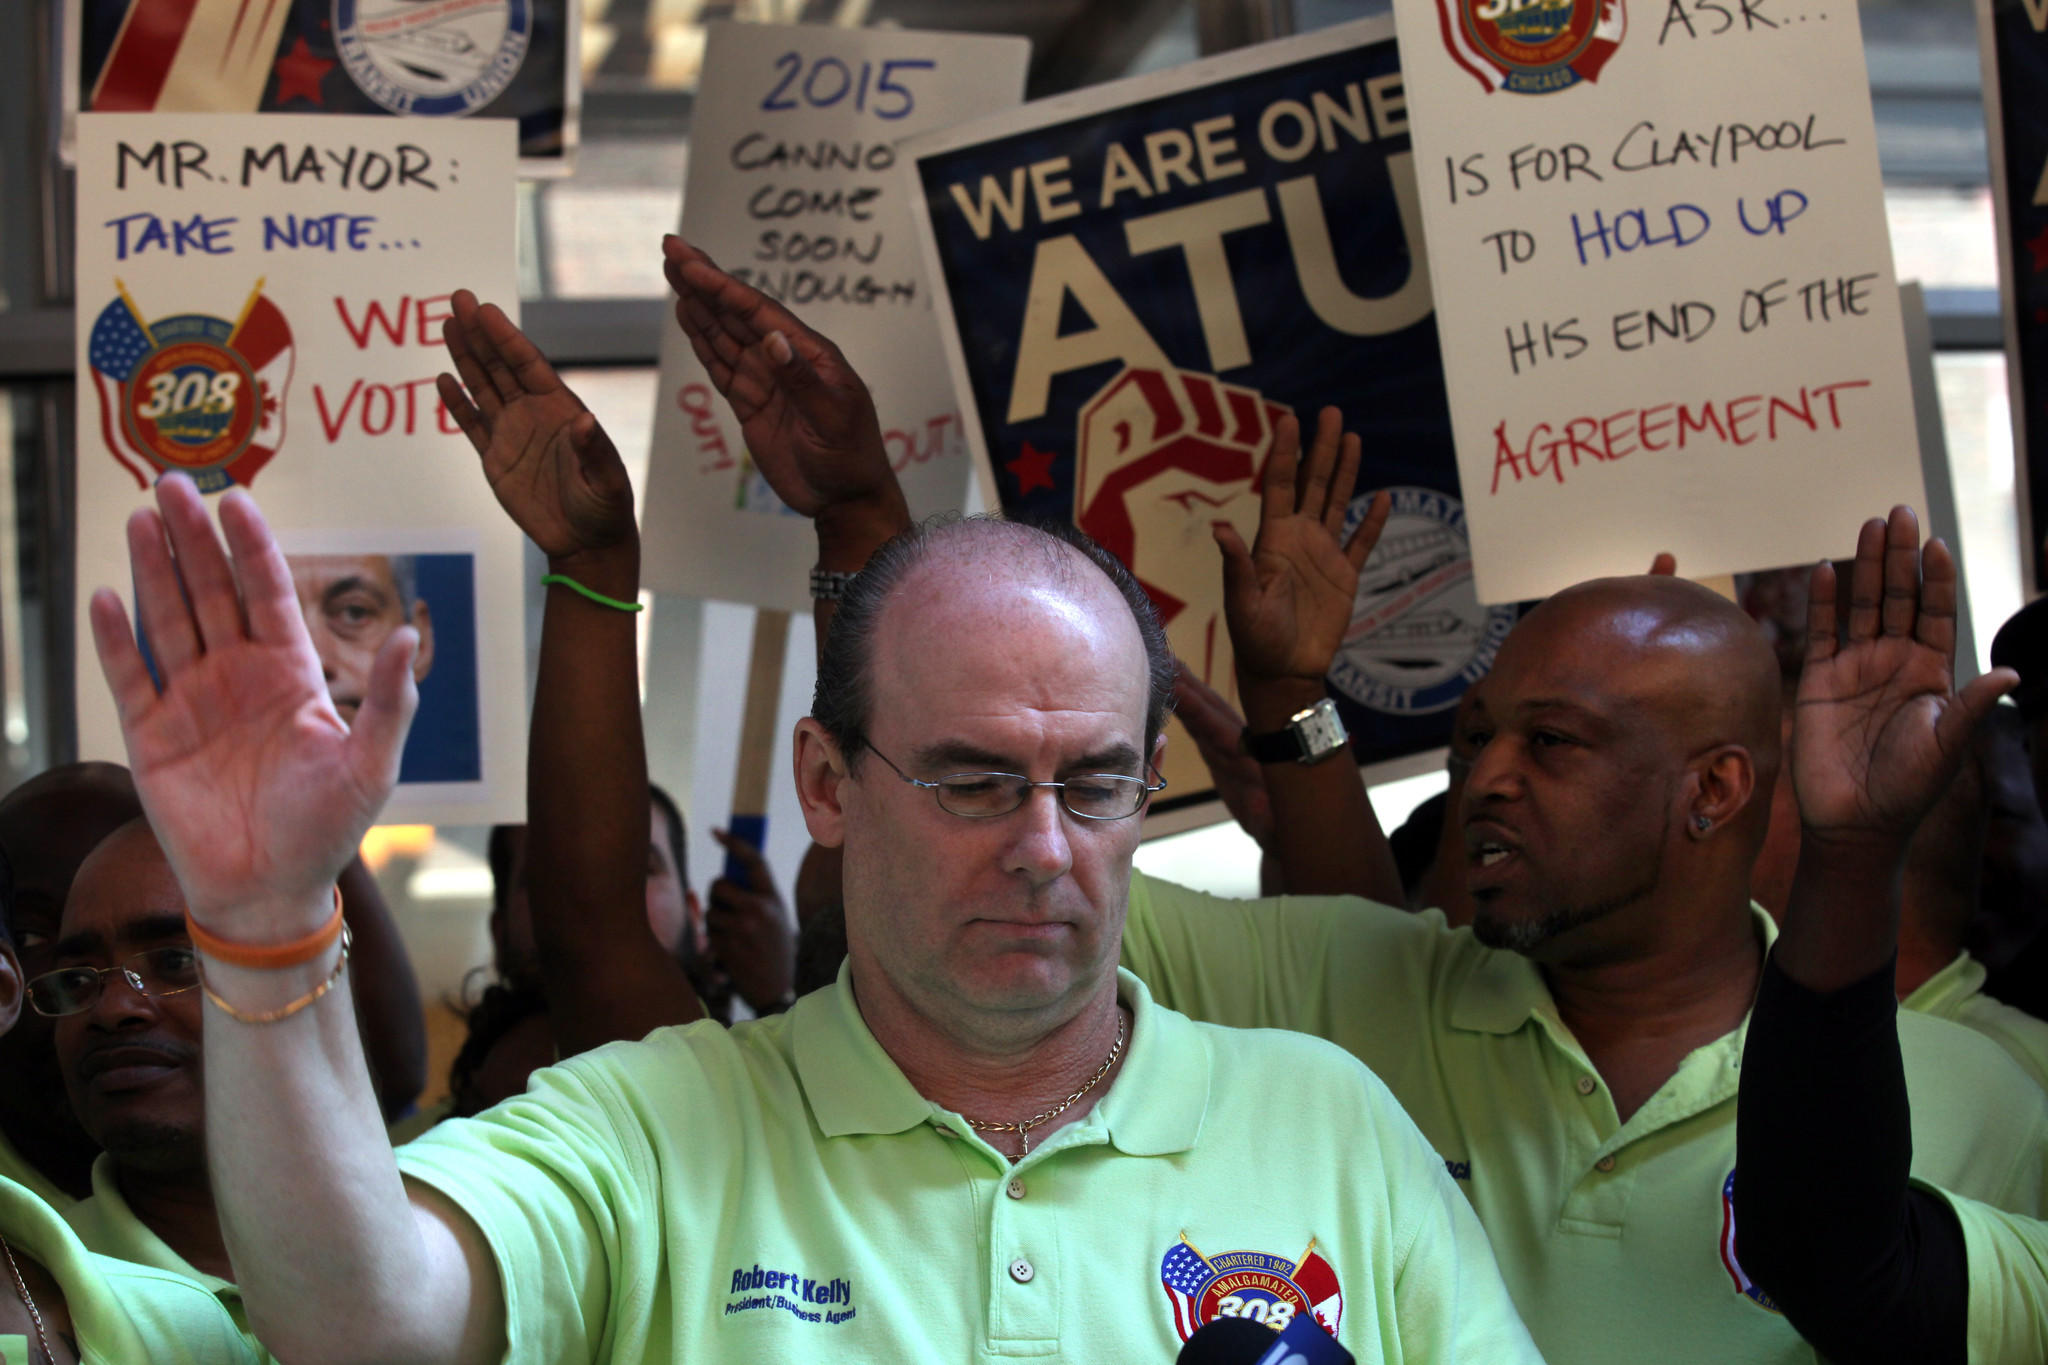 June 2013: Robert Kelly, President Amalgamated Transit Union Local 308, speaks to CTA union members of Local 308 and their supporters who were protesting outside CTA headquarters.